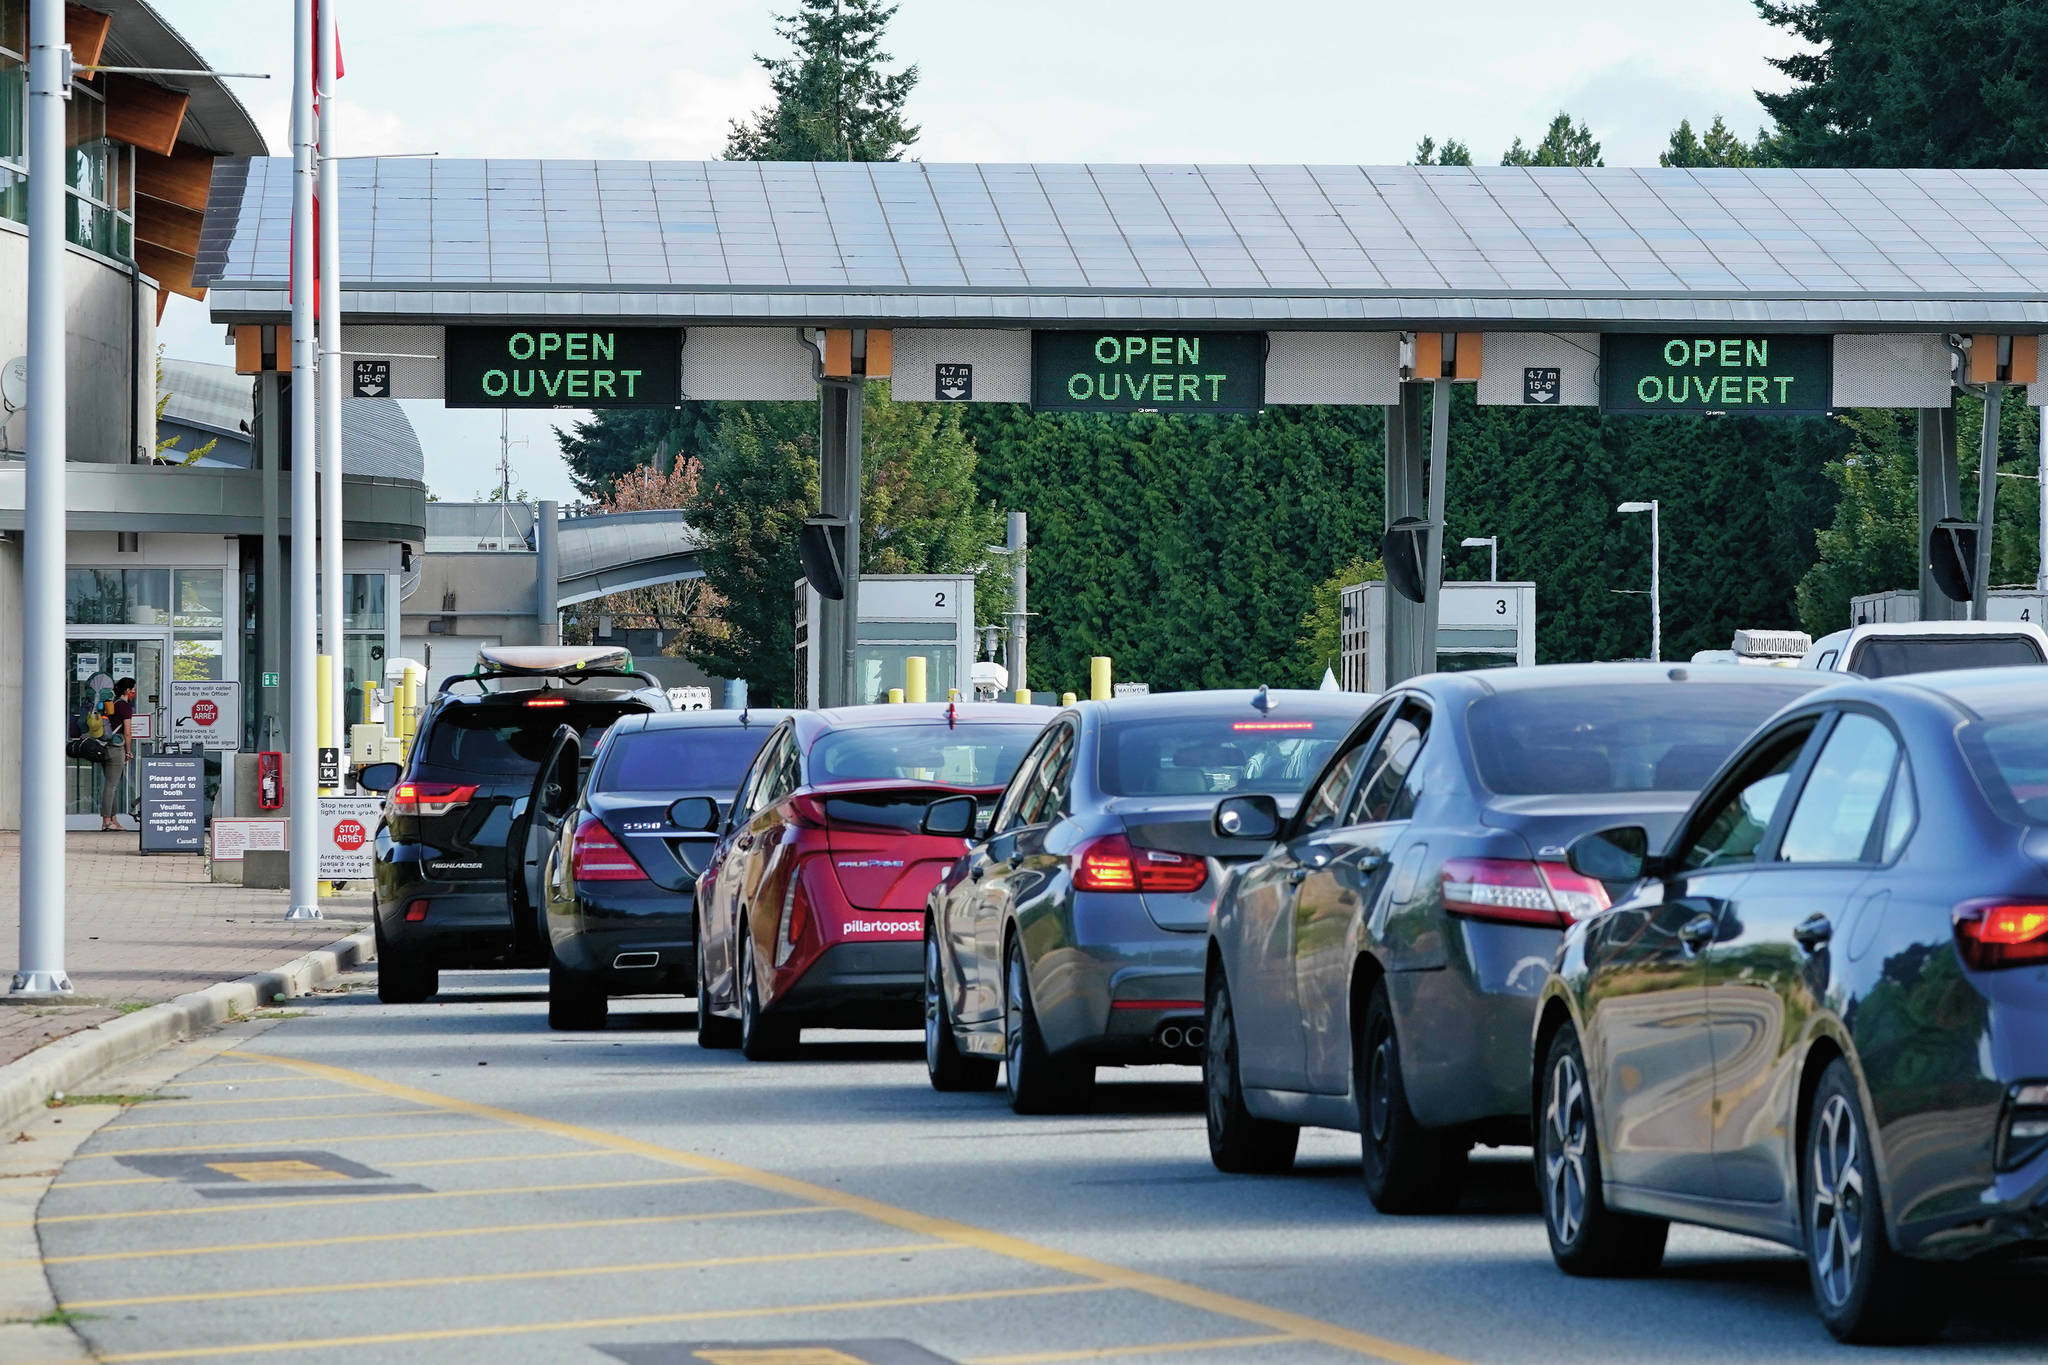 A line of vehicles wait to enter Canada at the Peace Arch border crossing Monday, Aug. 9, 2021, in Blaine, Wash. Canada lifted its prohibition on Americans crossing the border to shop, vacation or visit, but America kept similar restrictions in place, part of a bumpy return to normalcy from coronavirus travel bans. (AP Photo/Elaine Thompson)